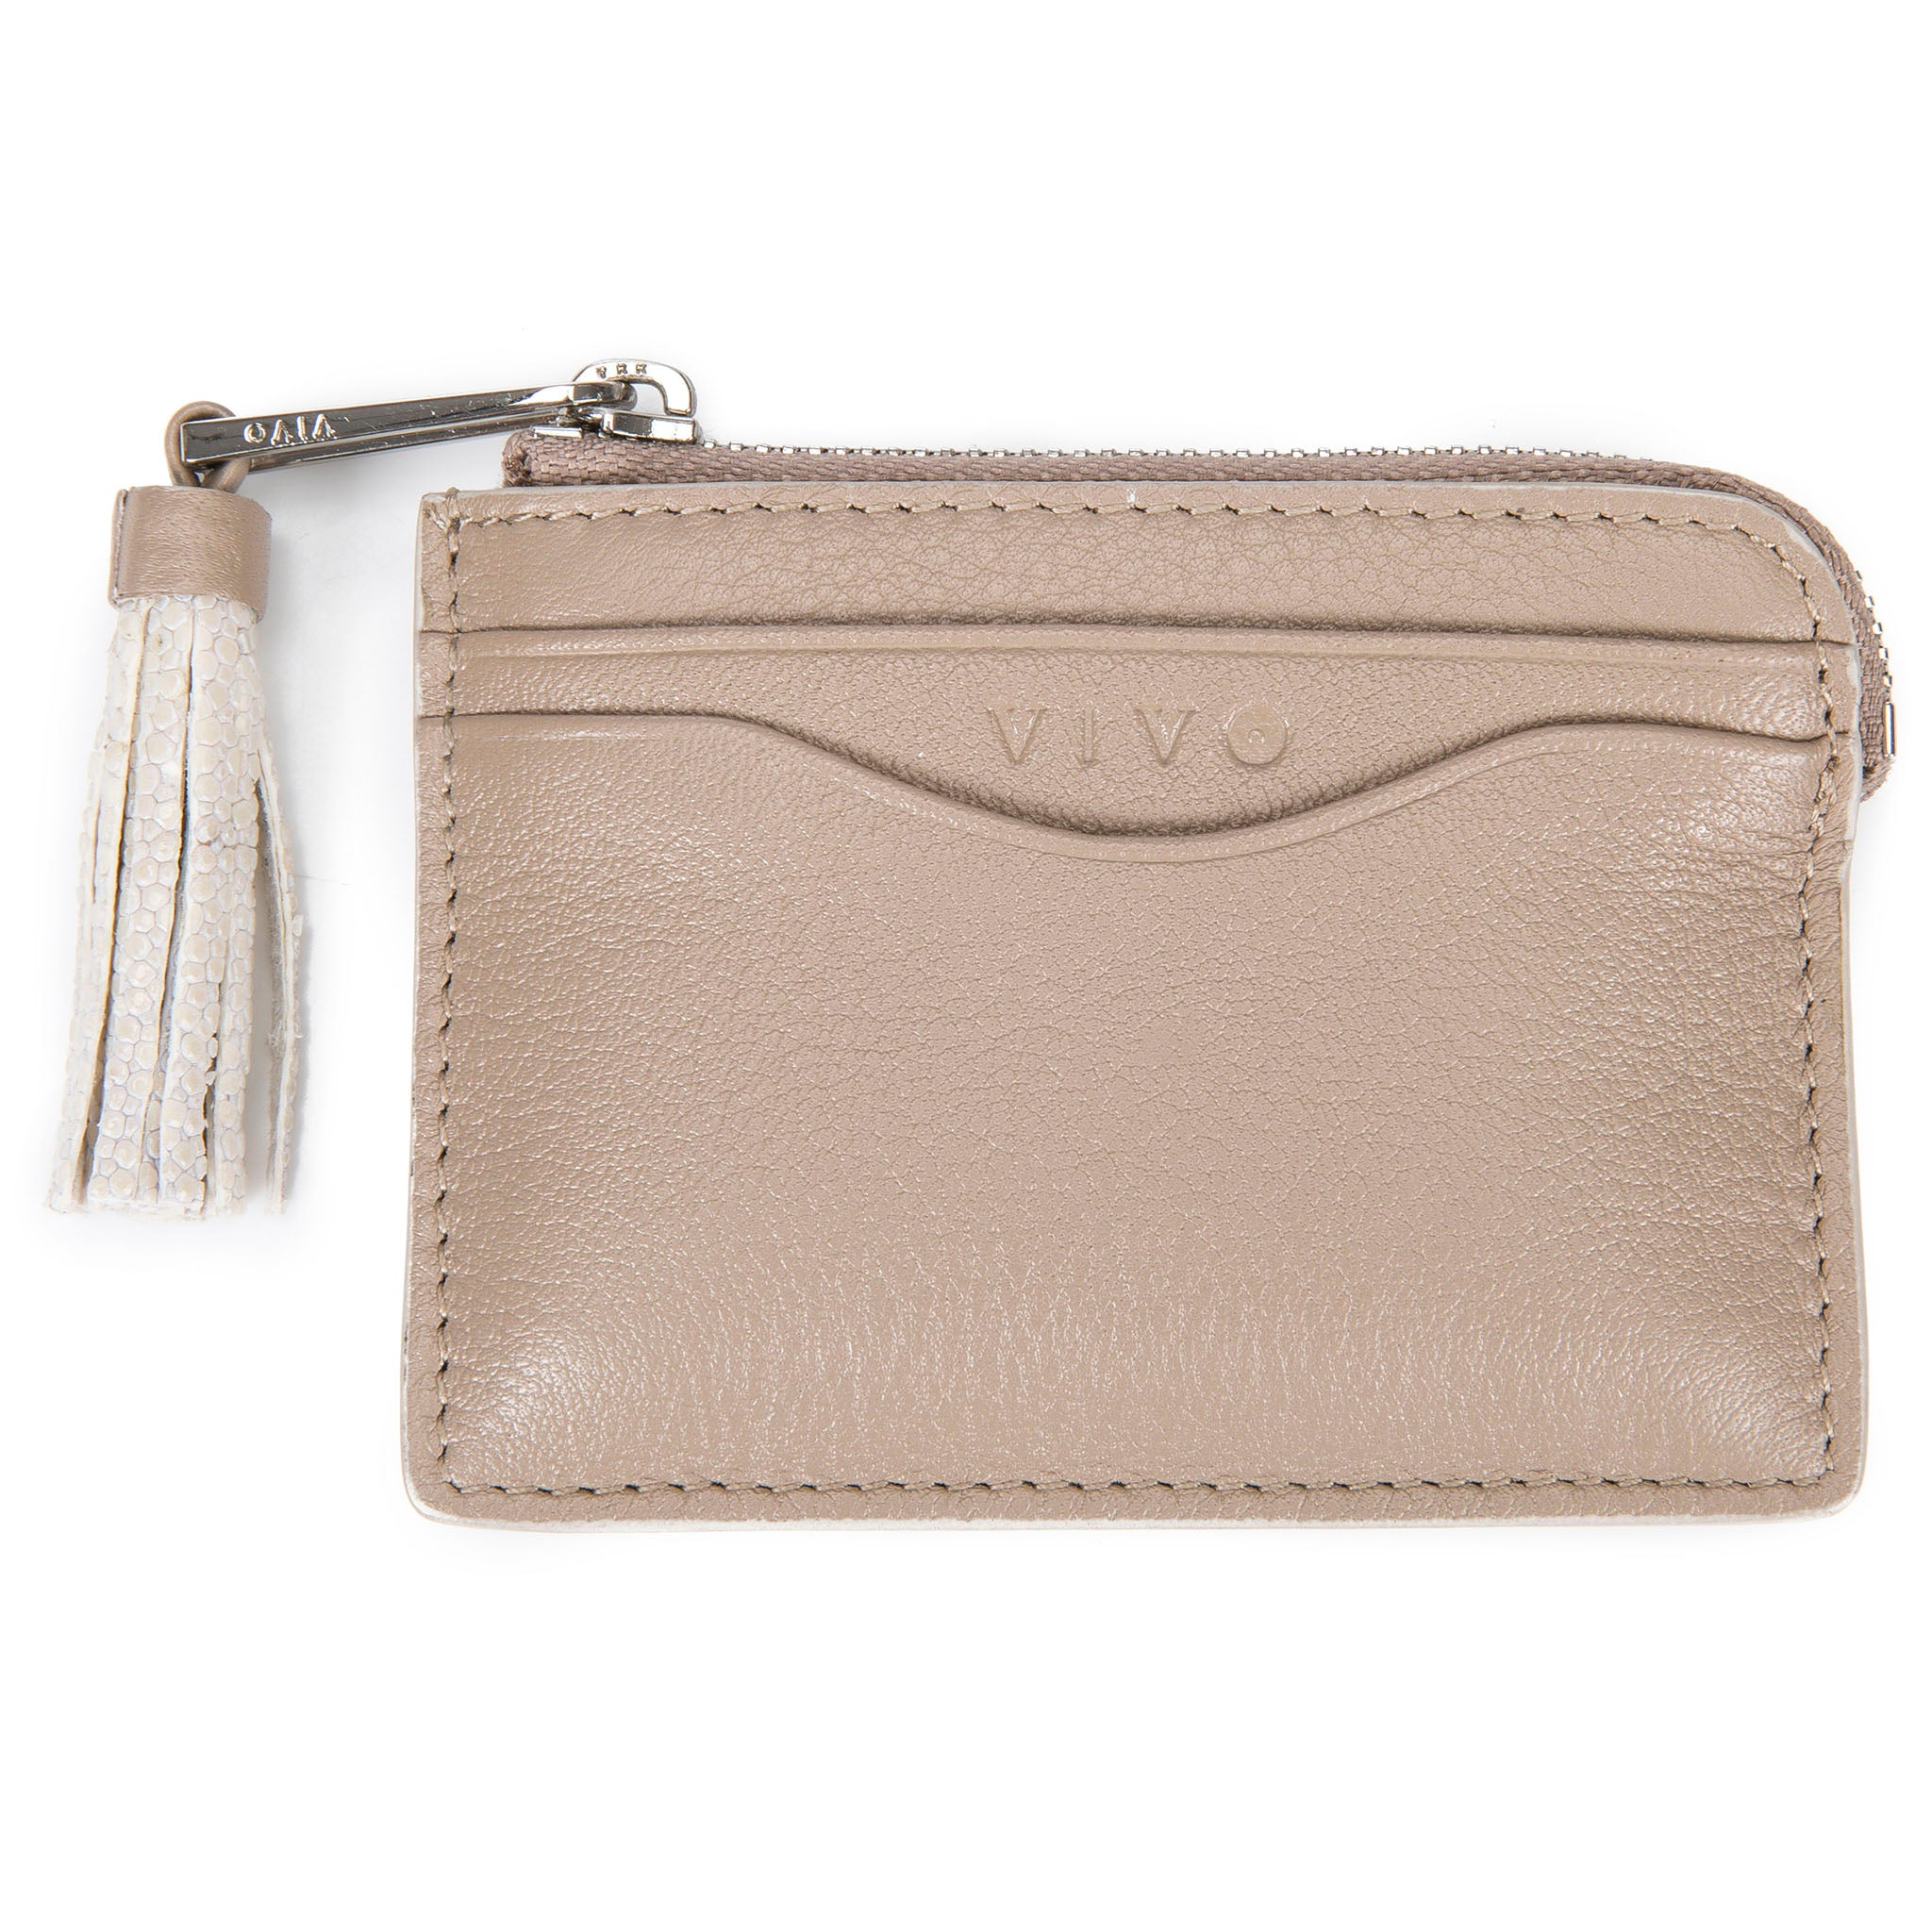 Buff Leather Zipper Card Or Coin Case With Shagreen Tassel Pull Front View Avery - Vivo Direct